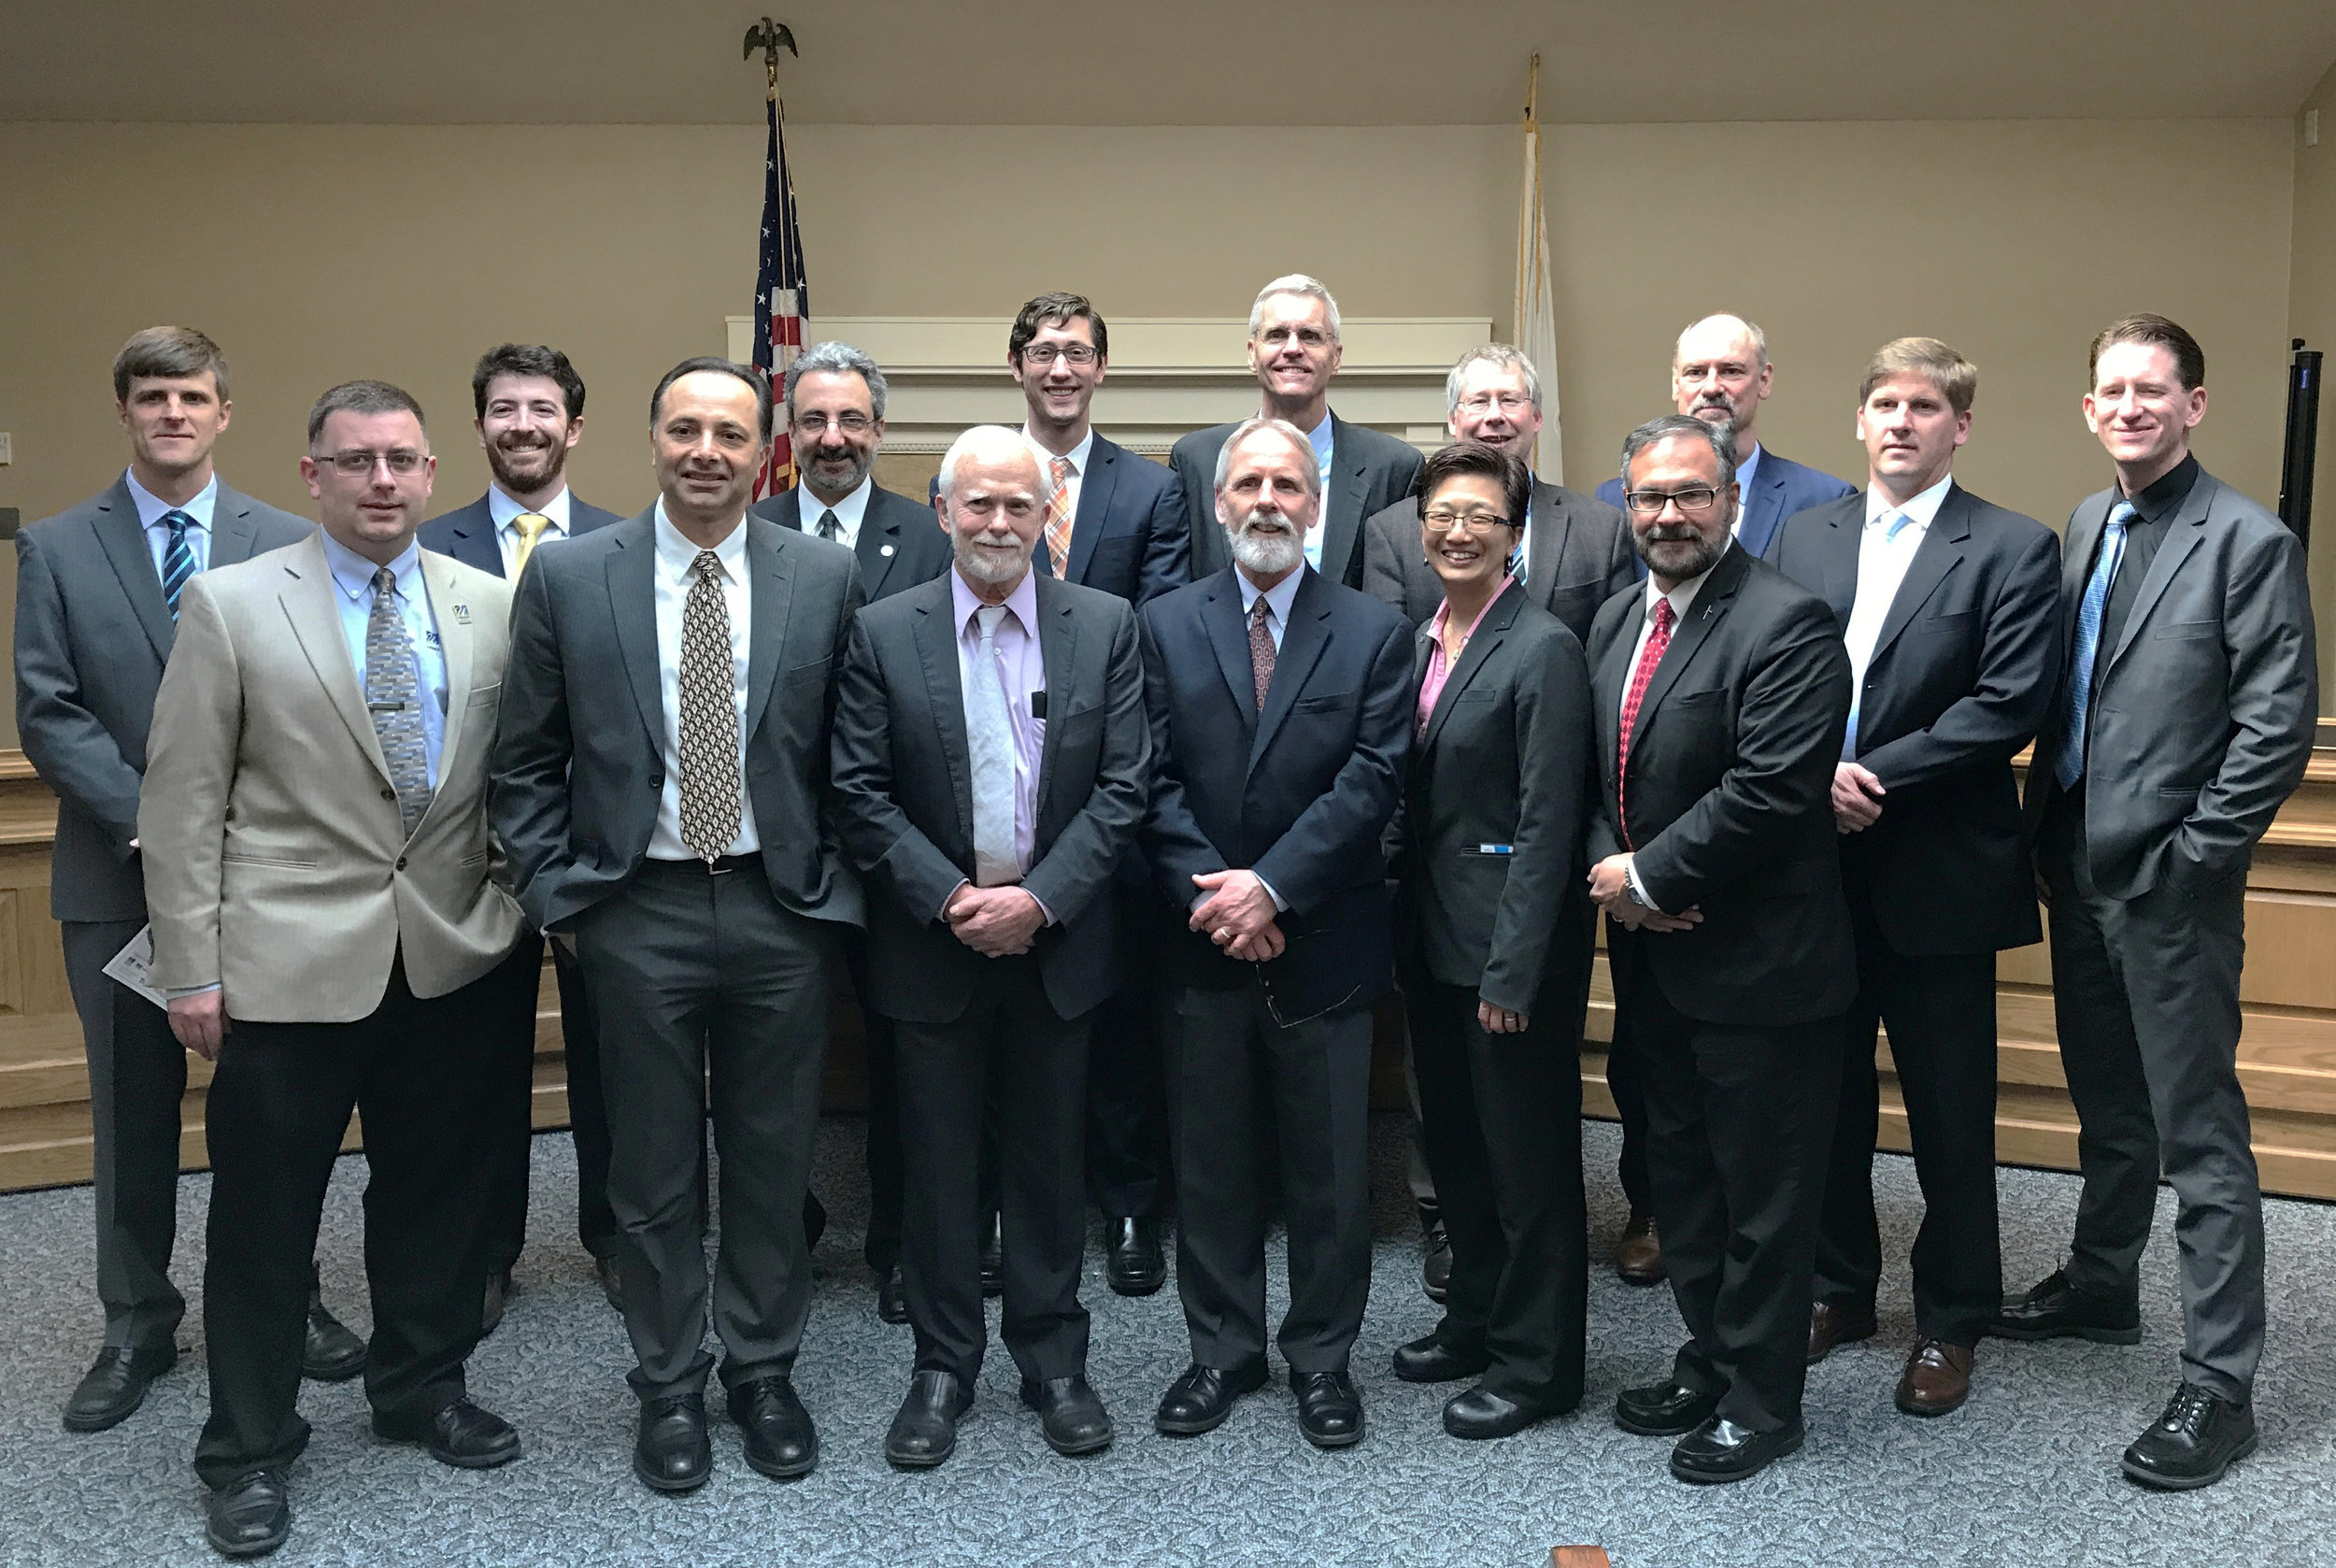 Members of the POWER-US team at the Massachusetts State House.